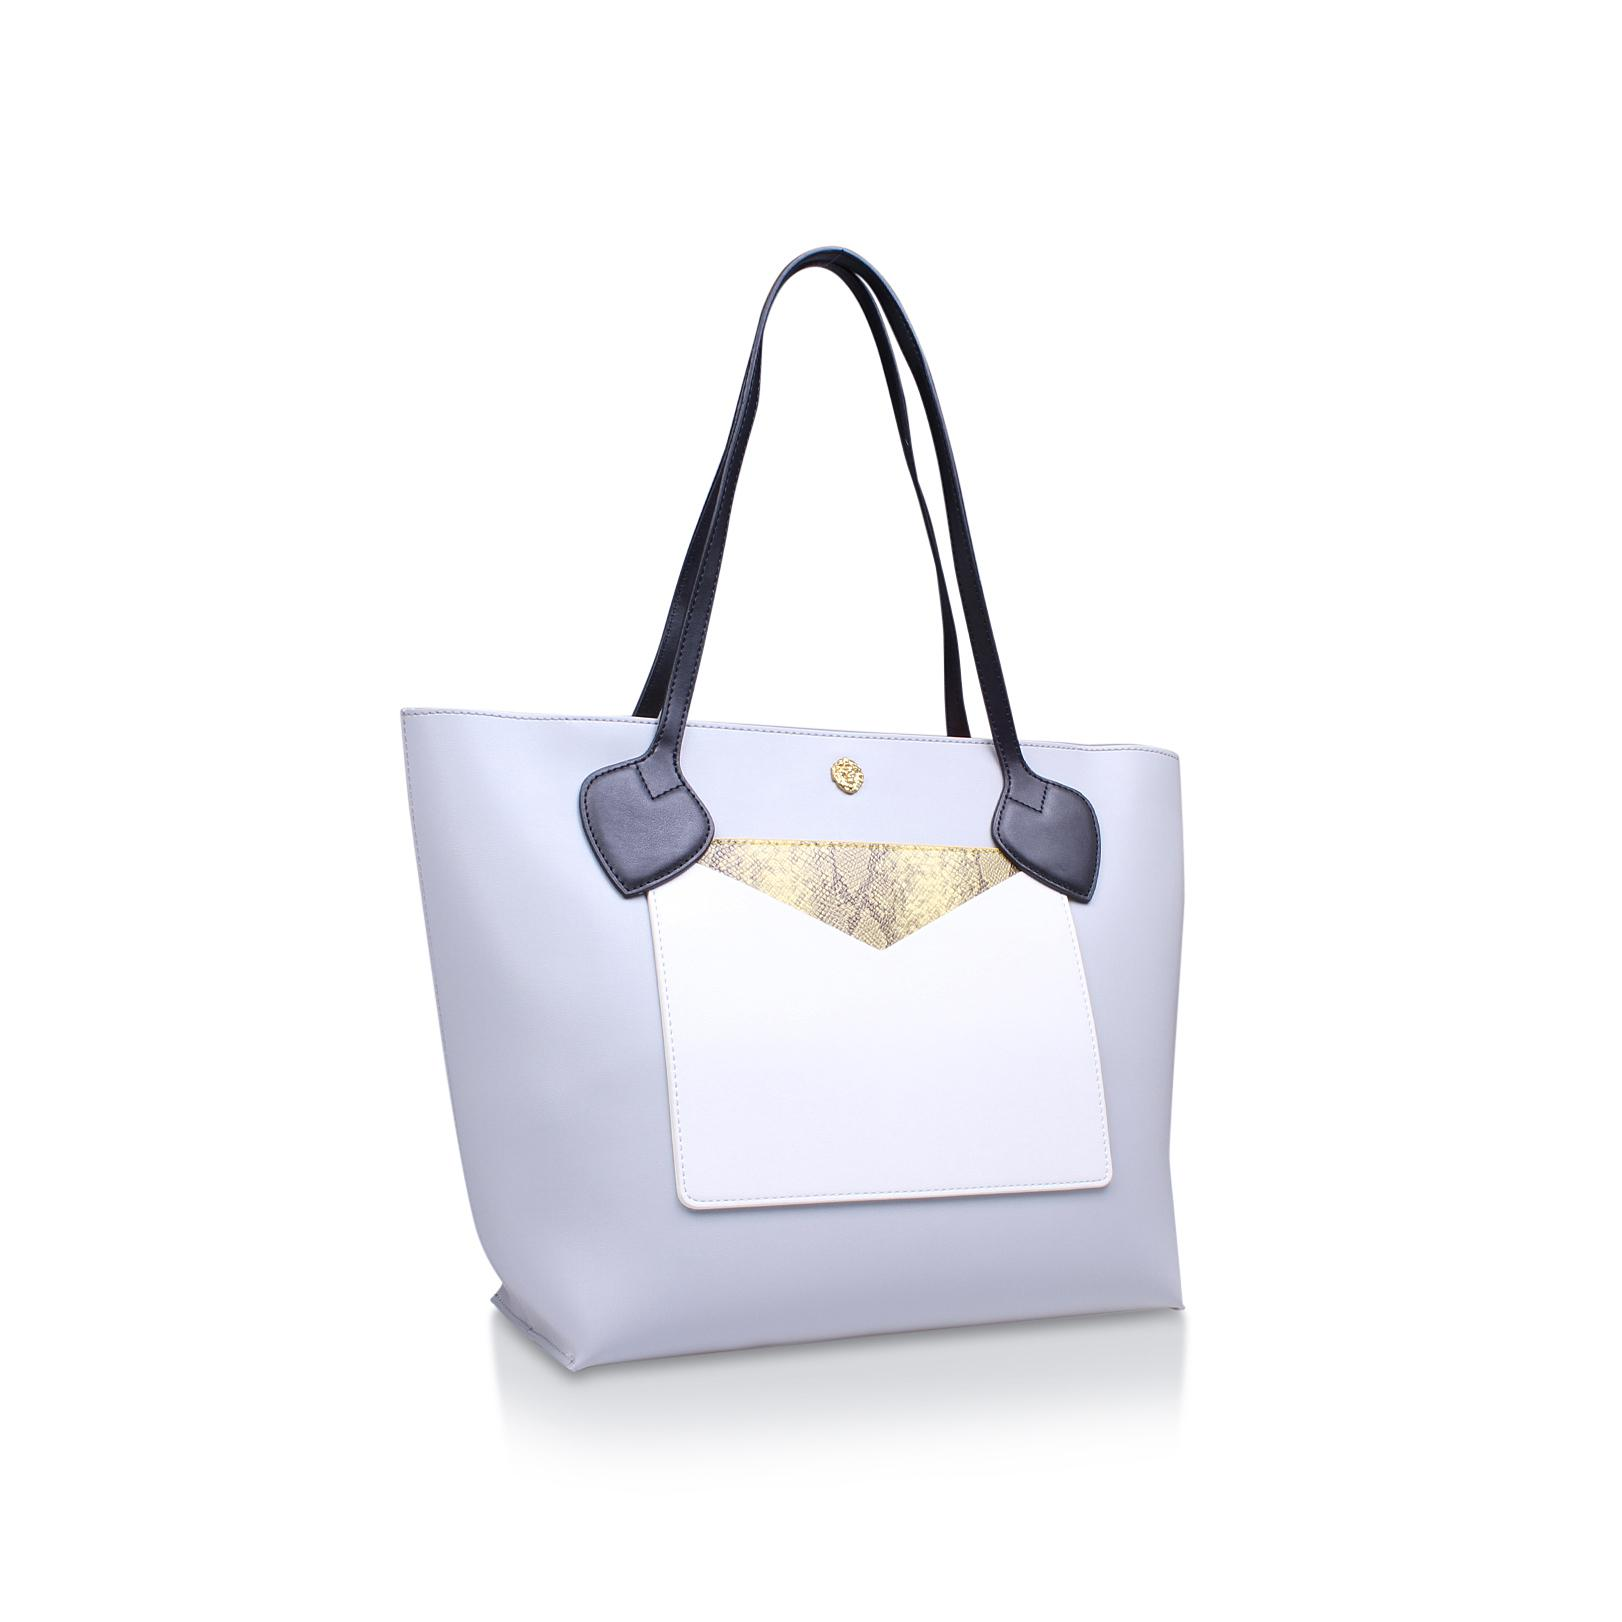 Anne Klein Toni Tote In Grey Other in Grey